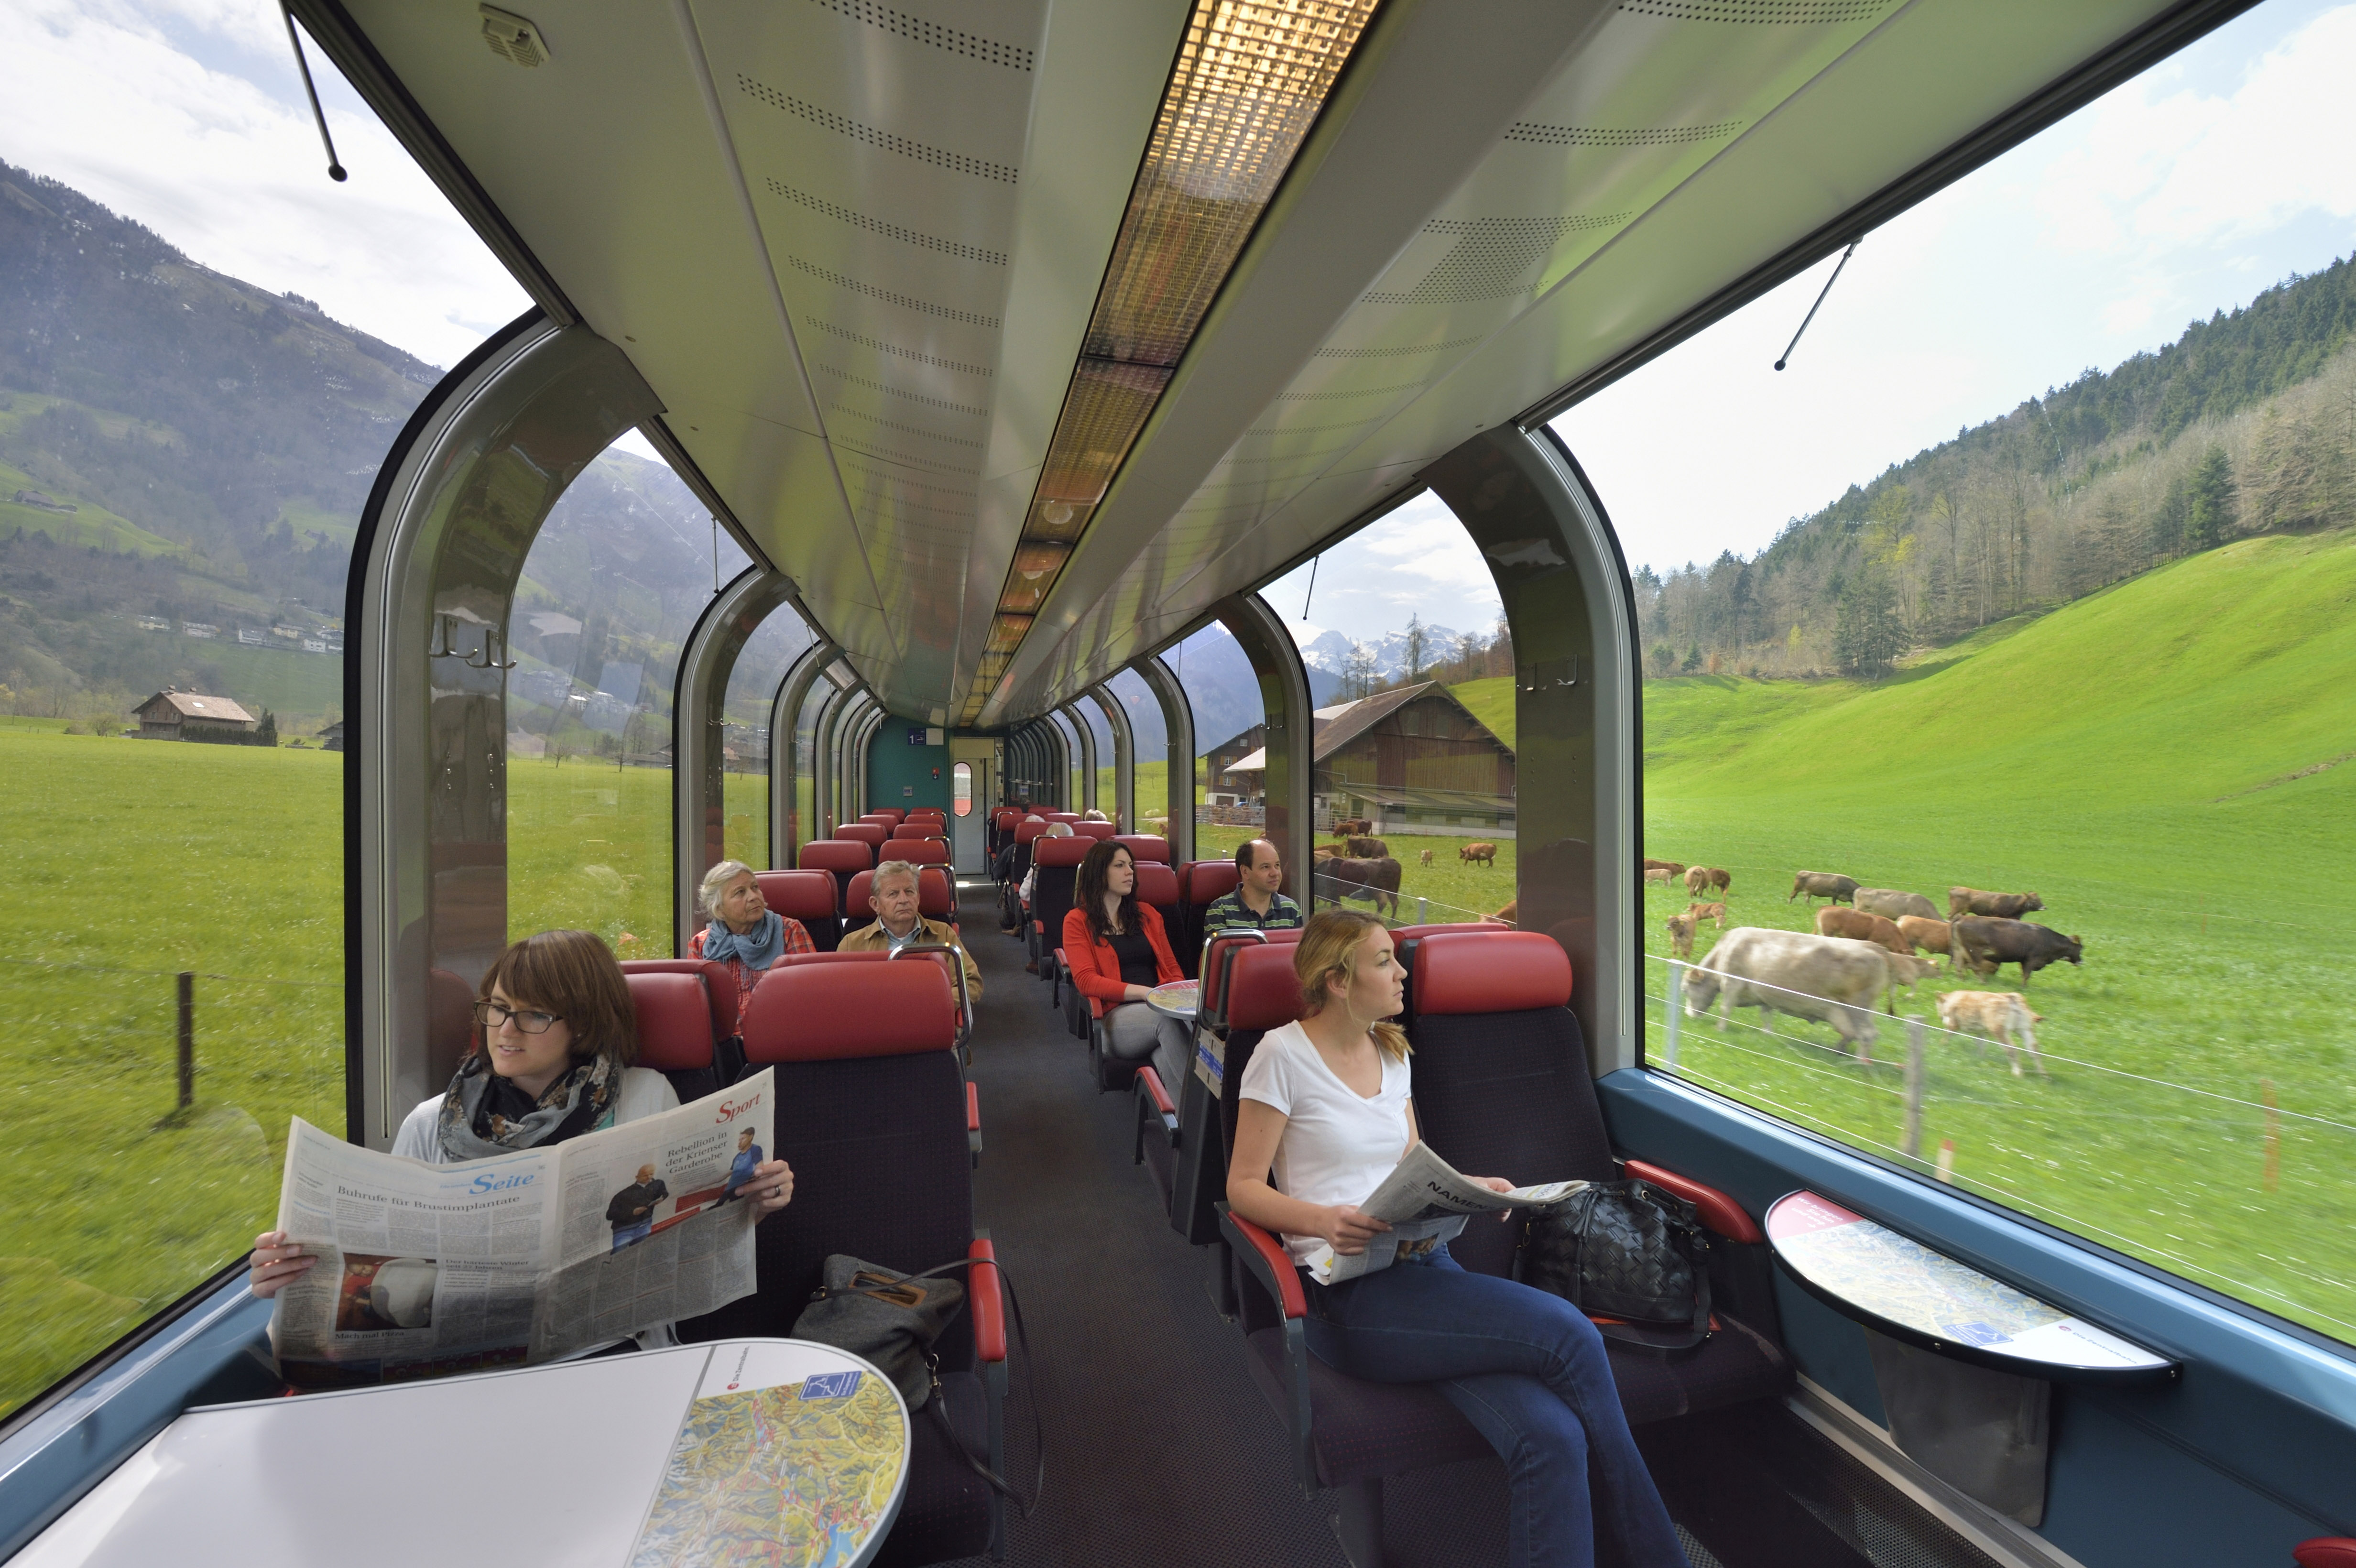 Luzern-Engelberg Express carriage